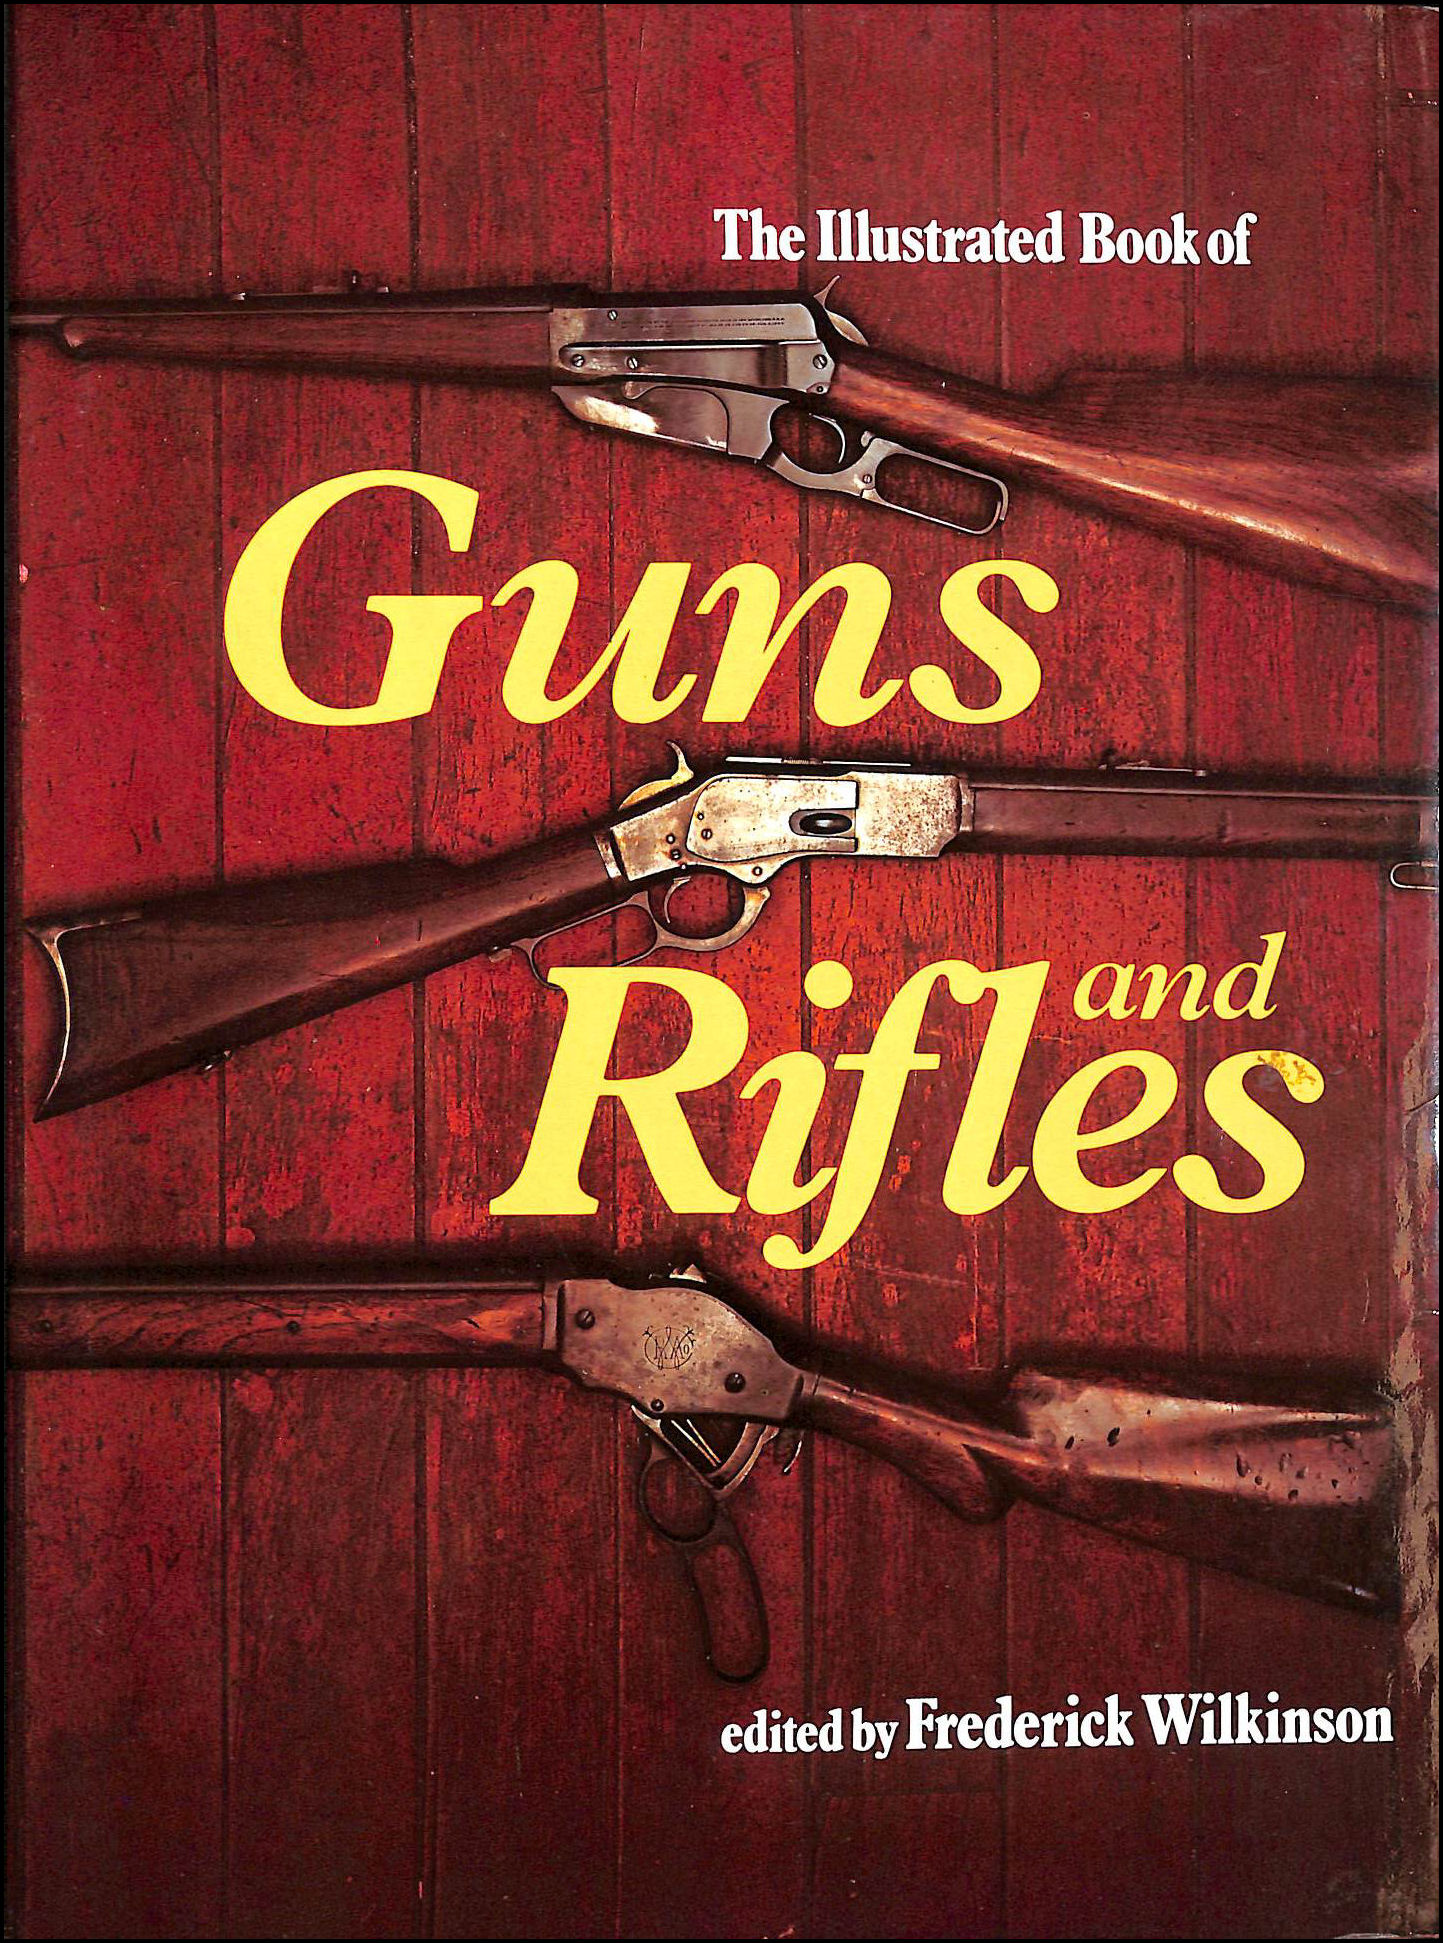 Illustrated Book of Guns and Rifles, Frederick Wilkinson